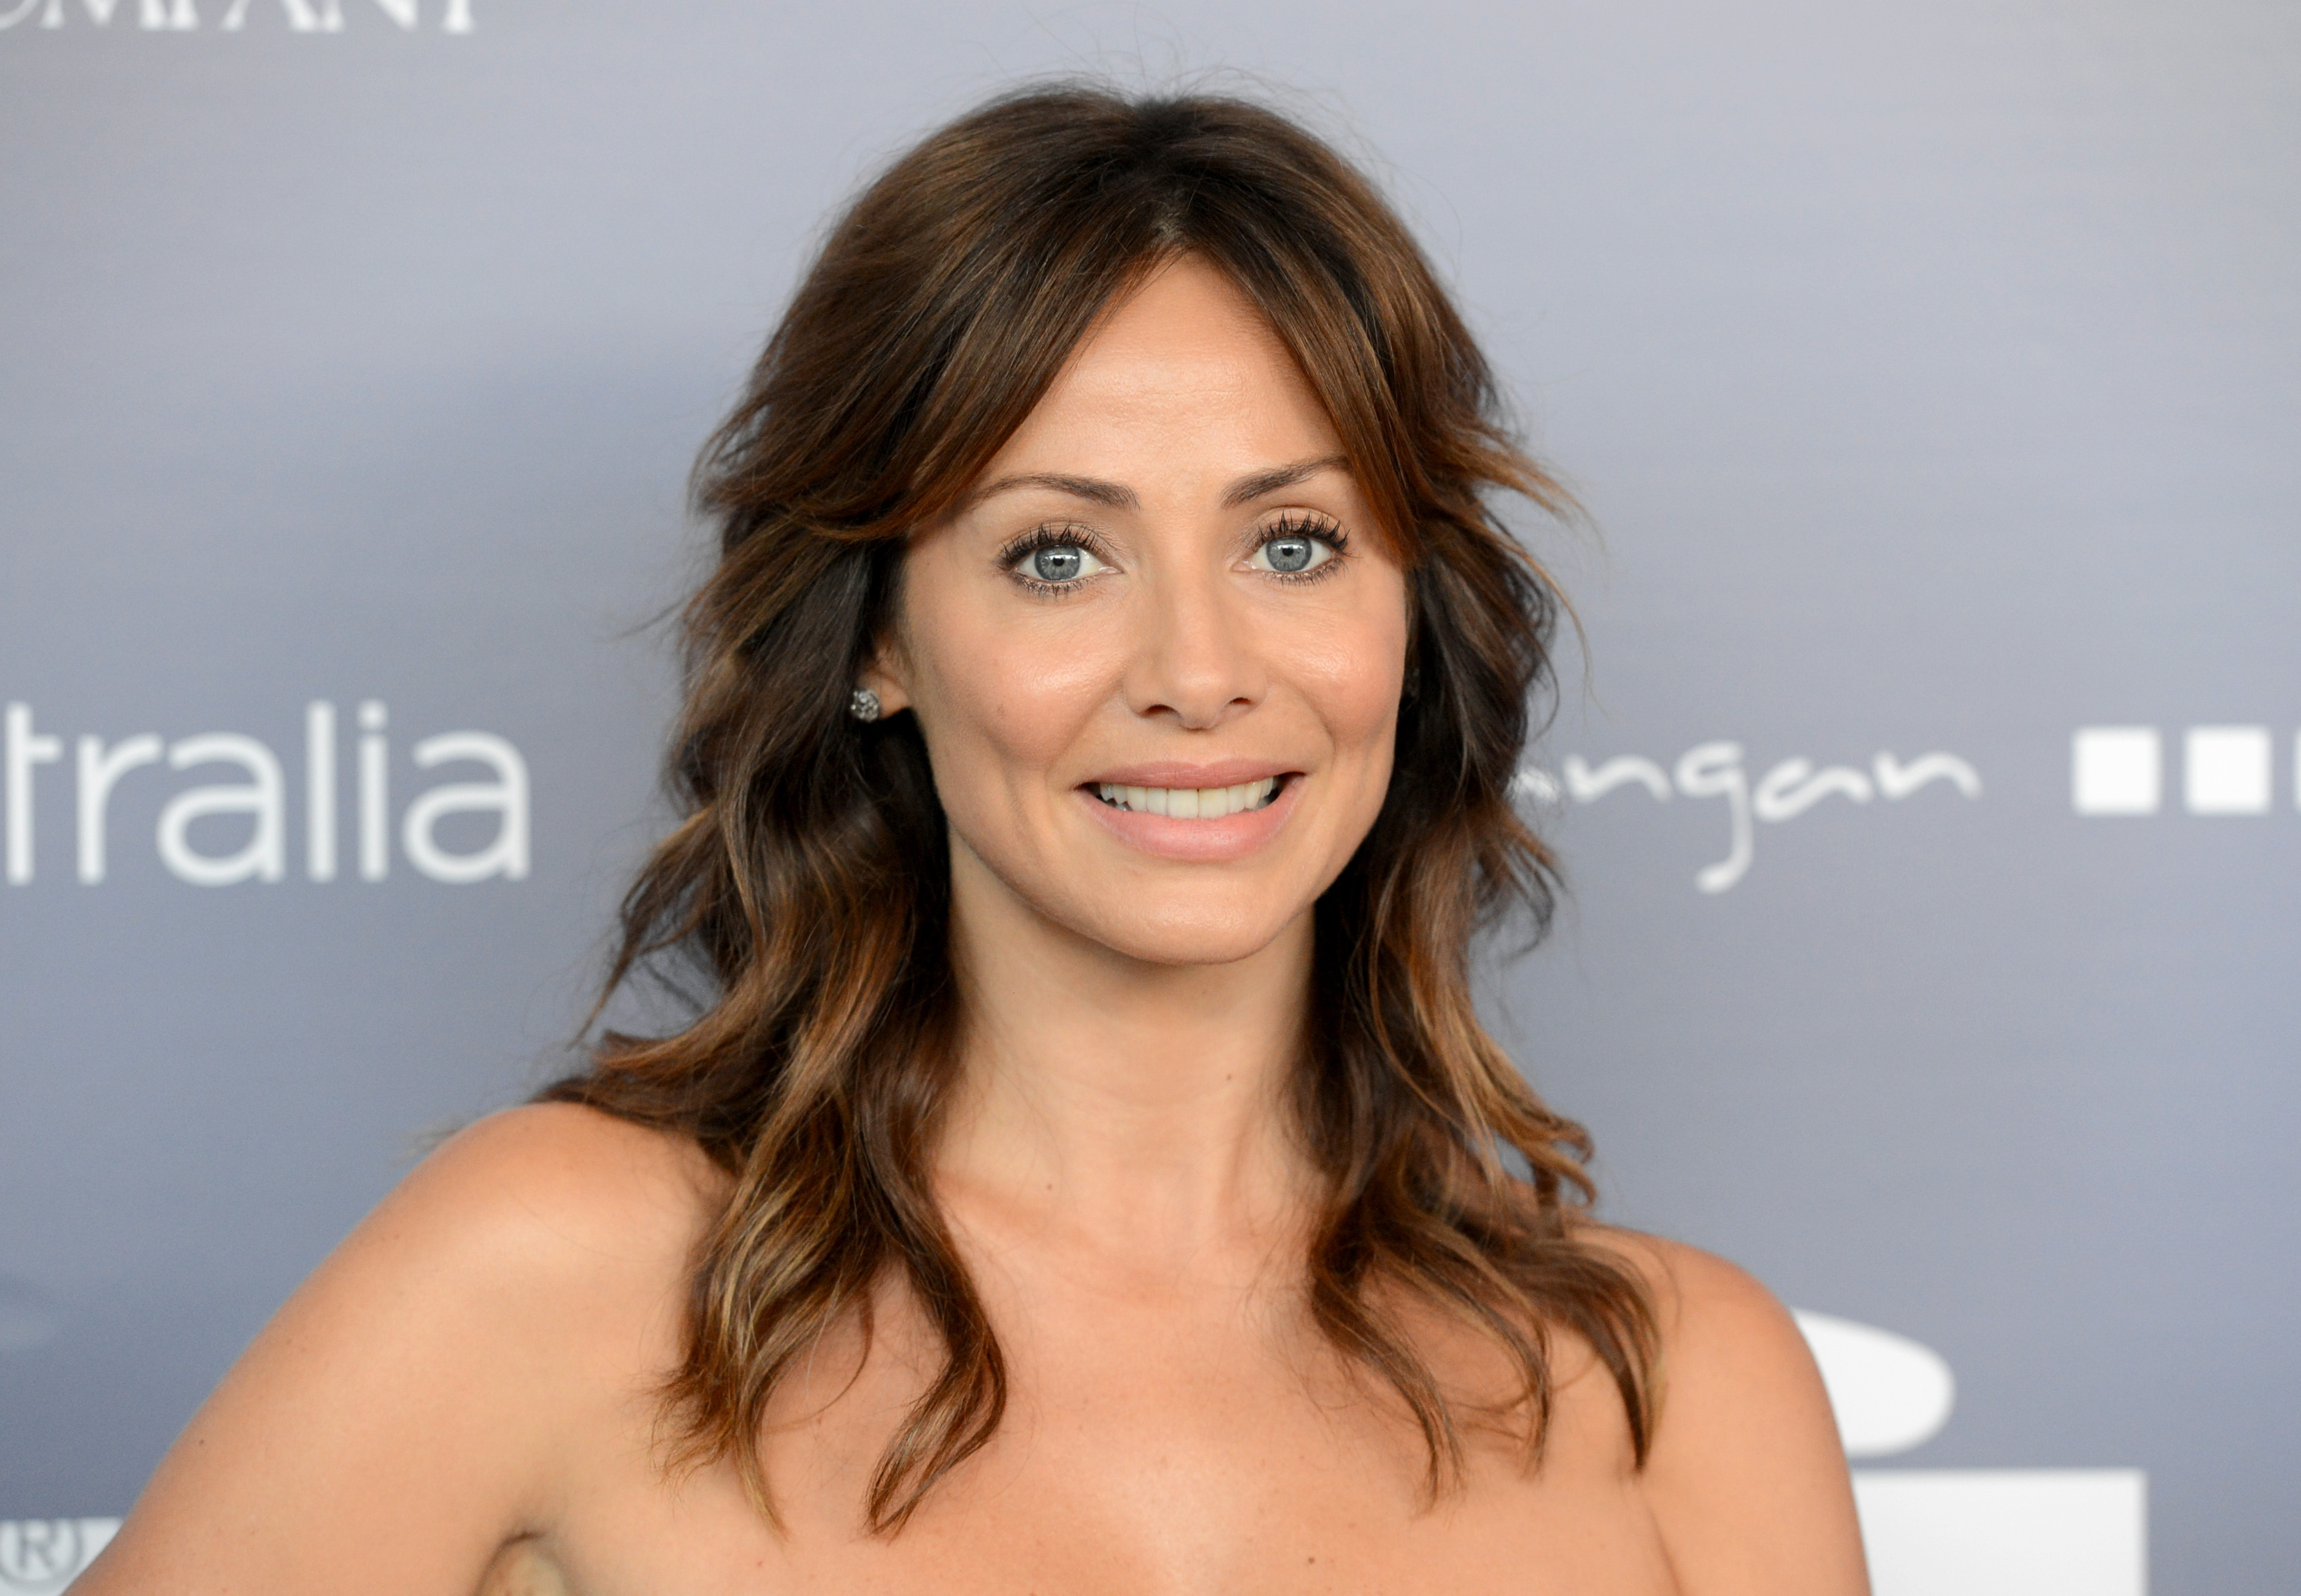 Young Natalie Imbruglia naked (89 photo), Topless, Sideboobs, Twitter, swimsuit 2006